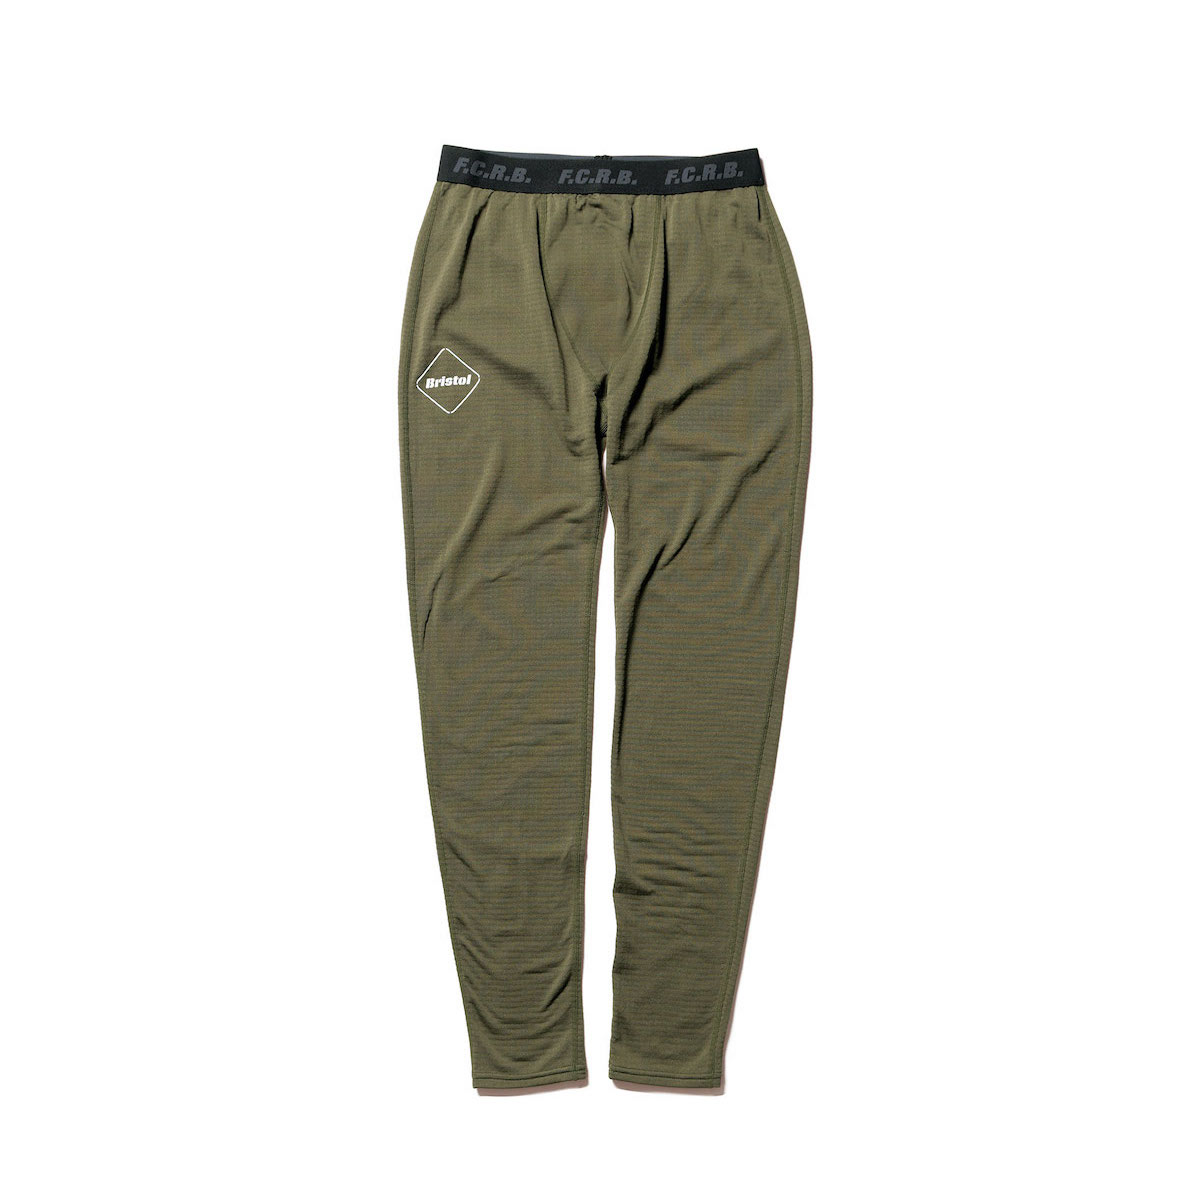 F.C.Real Bristol / POLARTEC BASE LAYER TIGHTS (Khaki)